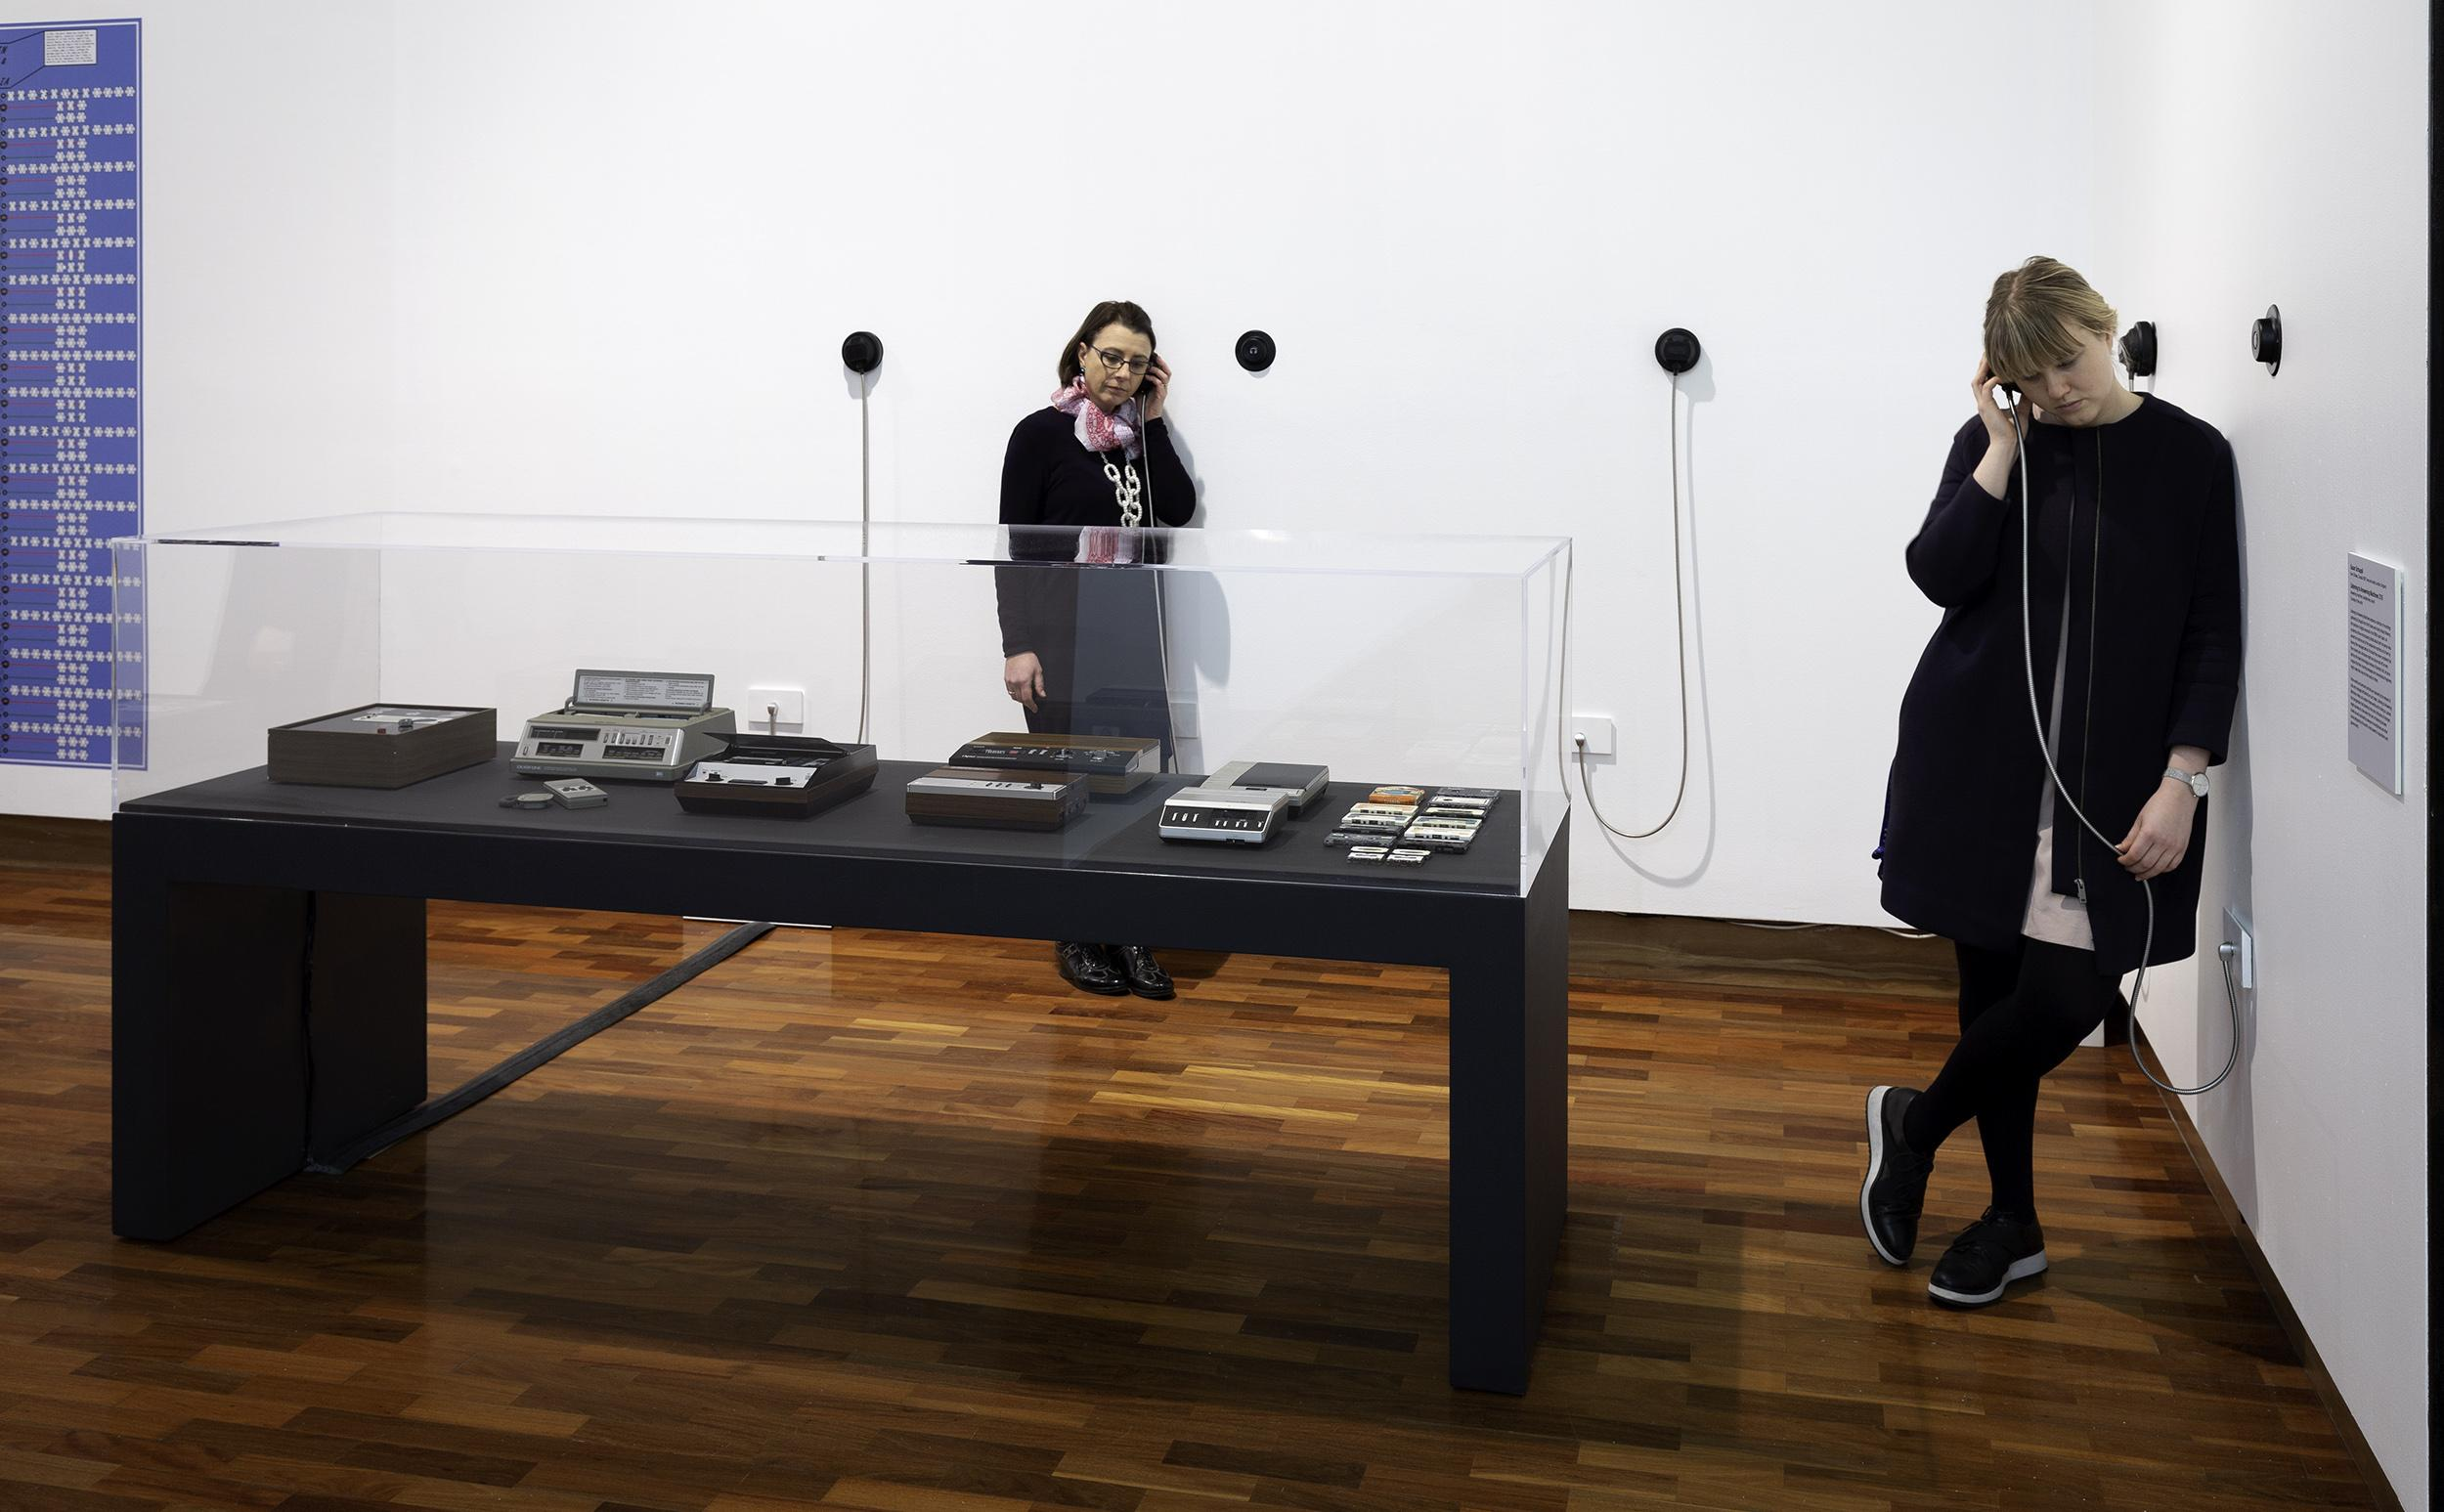 Susan Schuppli, Listening to Answering Machines, 2018, answering machines, headphones, sound. Image courtesy of the artist.